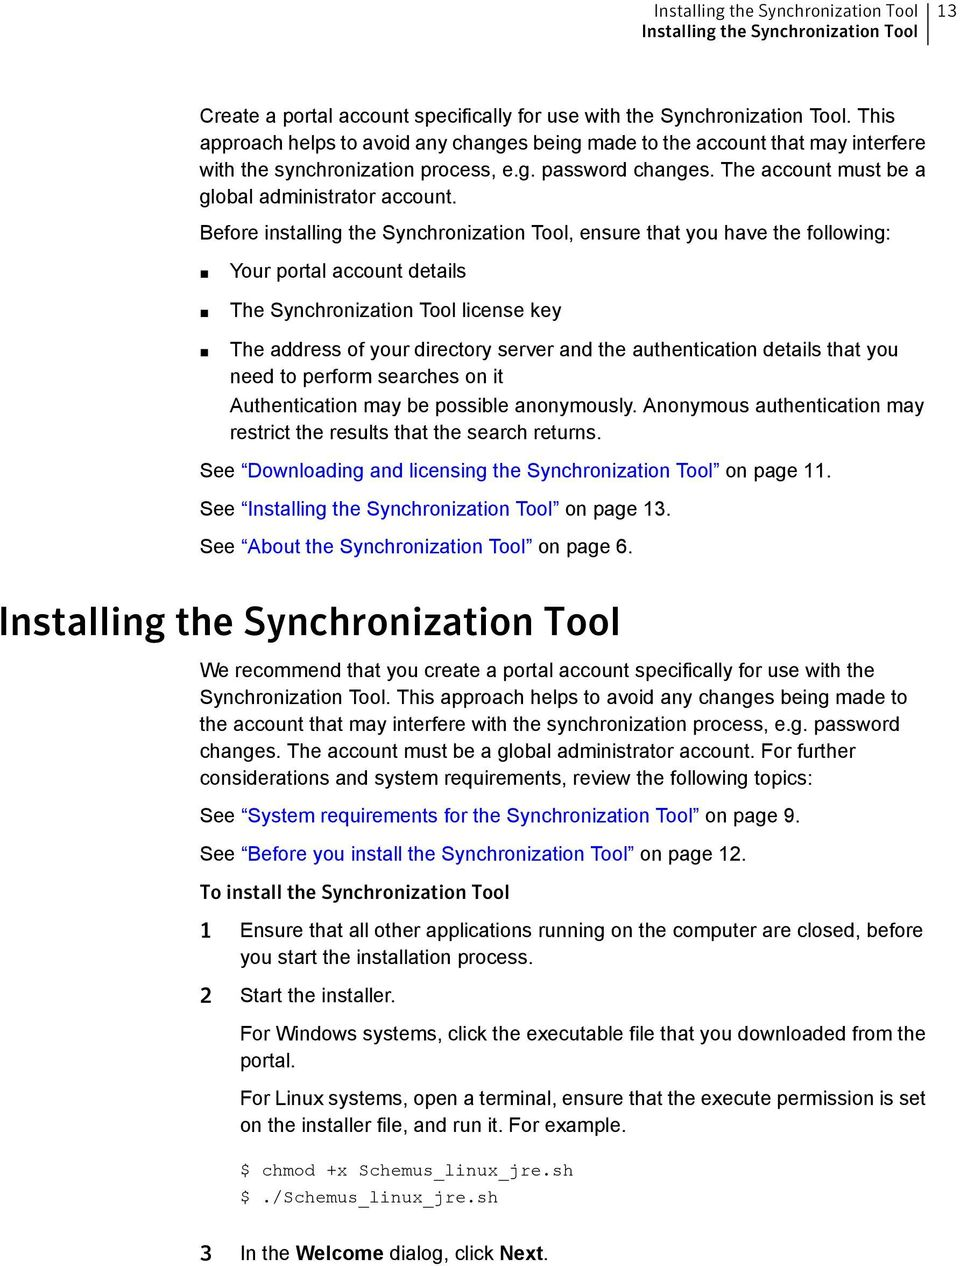 Before installing the Synchronization Tool, ensure that you have the following: Your portal account details The Synchronization Tool license key The address of your directory server and the